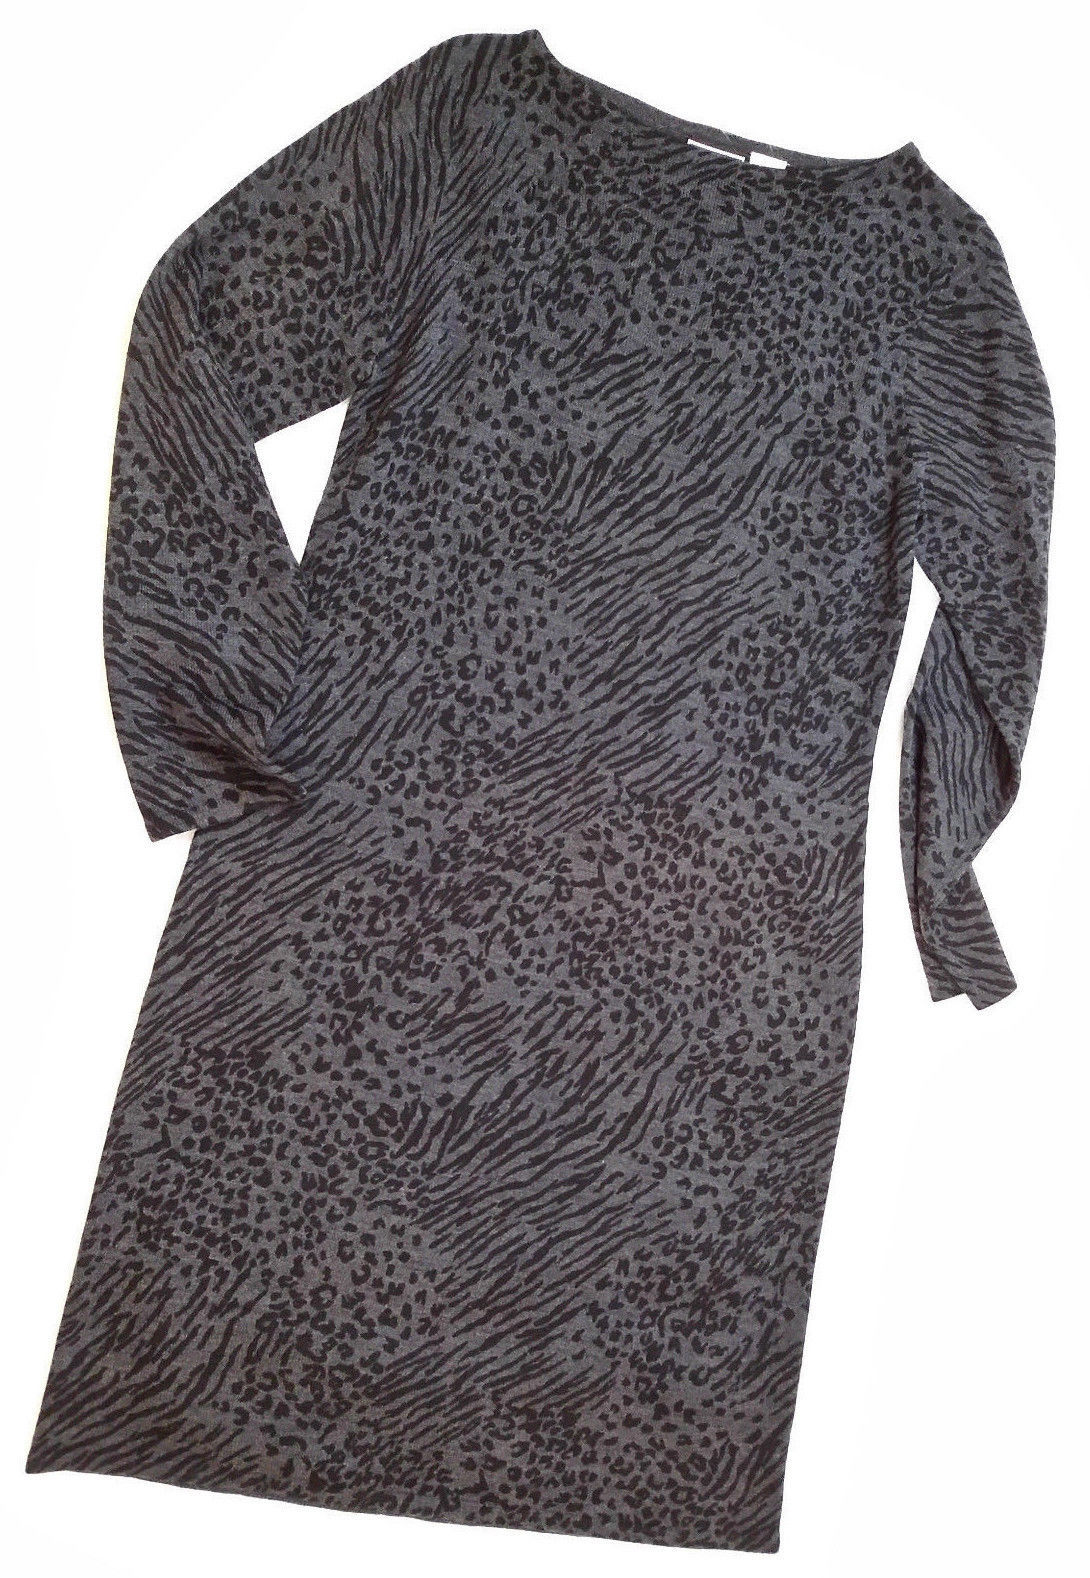 03b37a76042 LENNIE for Nina Leonard Women s Animal Print Black Gray Knit Dress Size ...